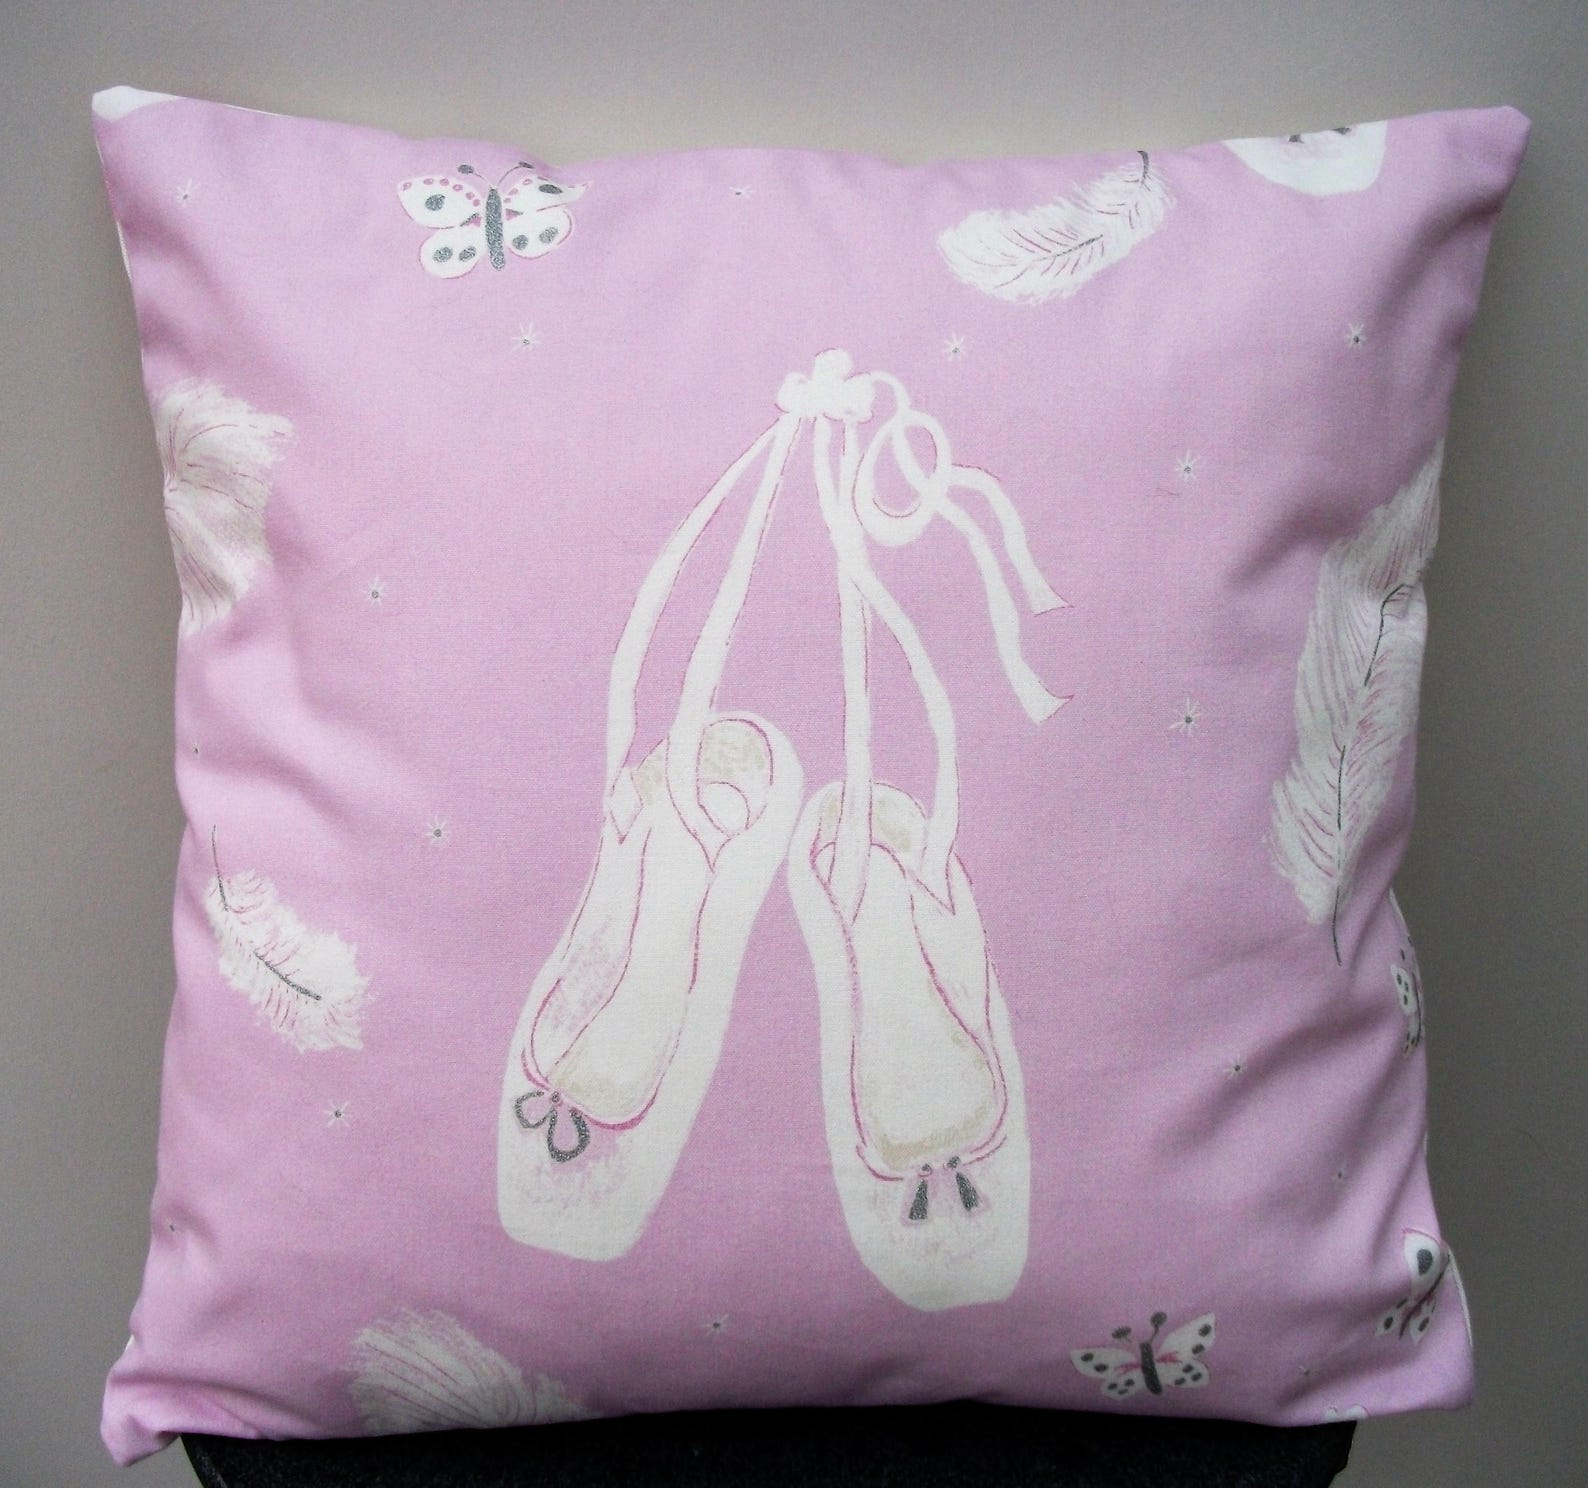 ballerina cushion cover, ballerina pillow, ballet dancer gift, ballerina gift, ballet decor, gift for her, gift for ballet lover